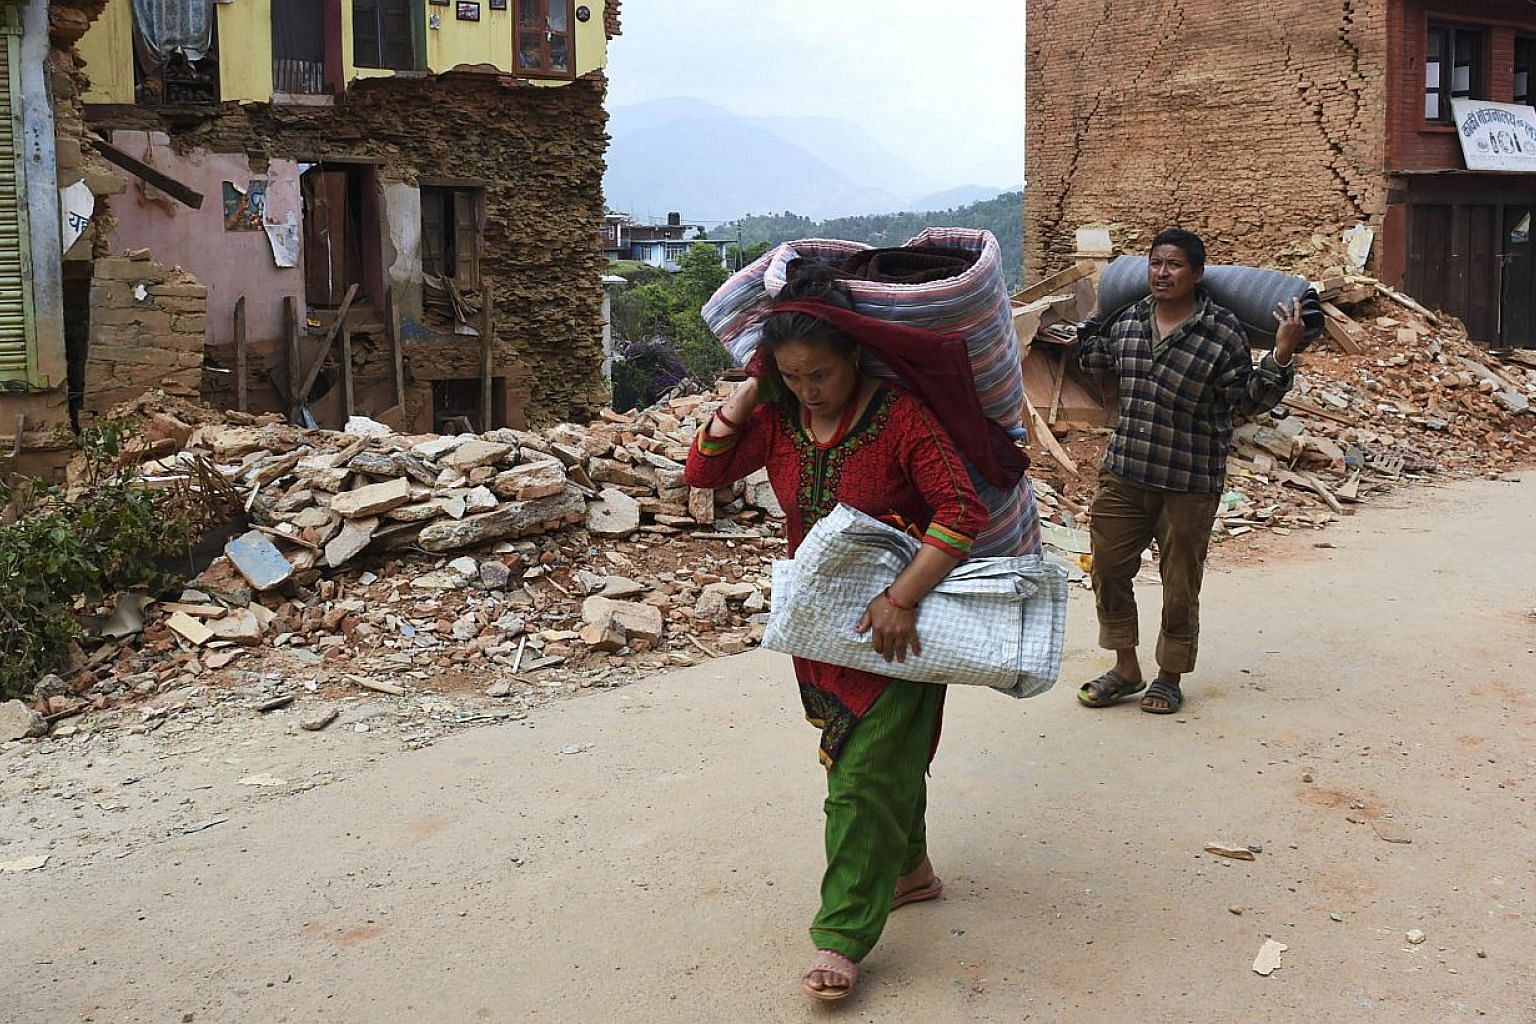 Nepalese residents carry their belongings as they walk past destroyed buildings inthe town of Chautara in north-eastern Nepal in the aftermath of two earthquakes in the span of three weeks that shook the country. -- PHOTO: AFP